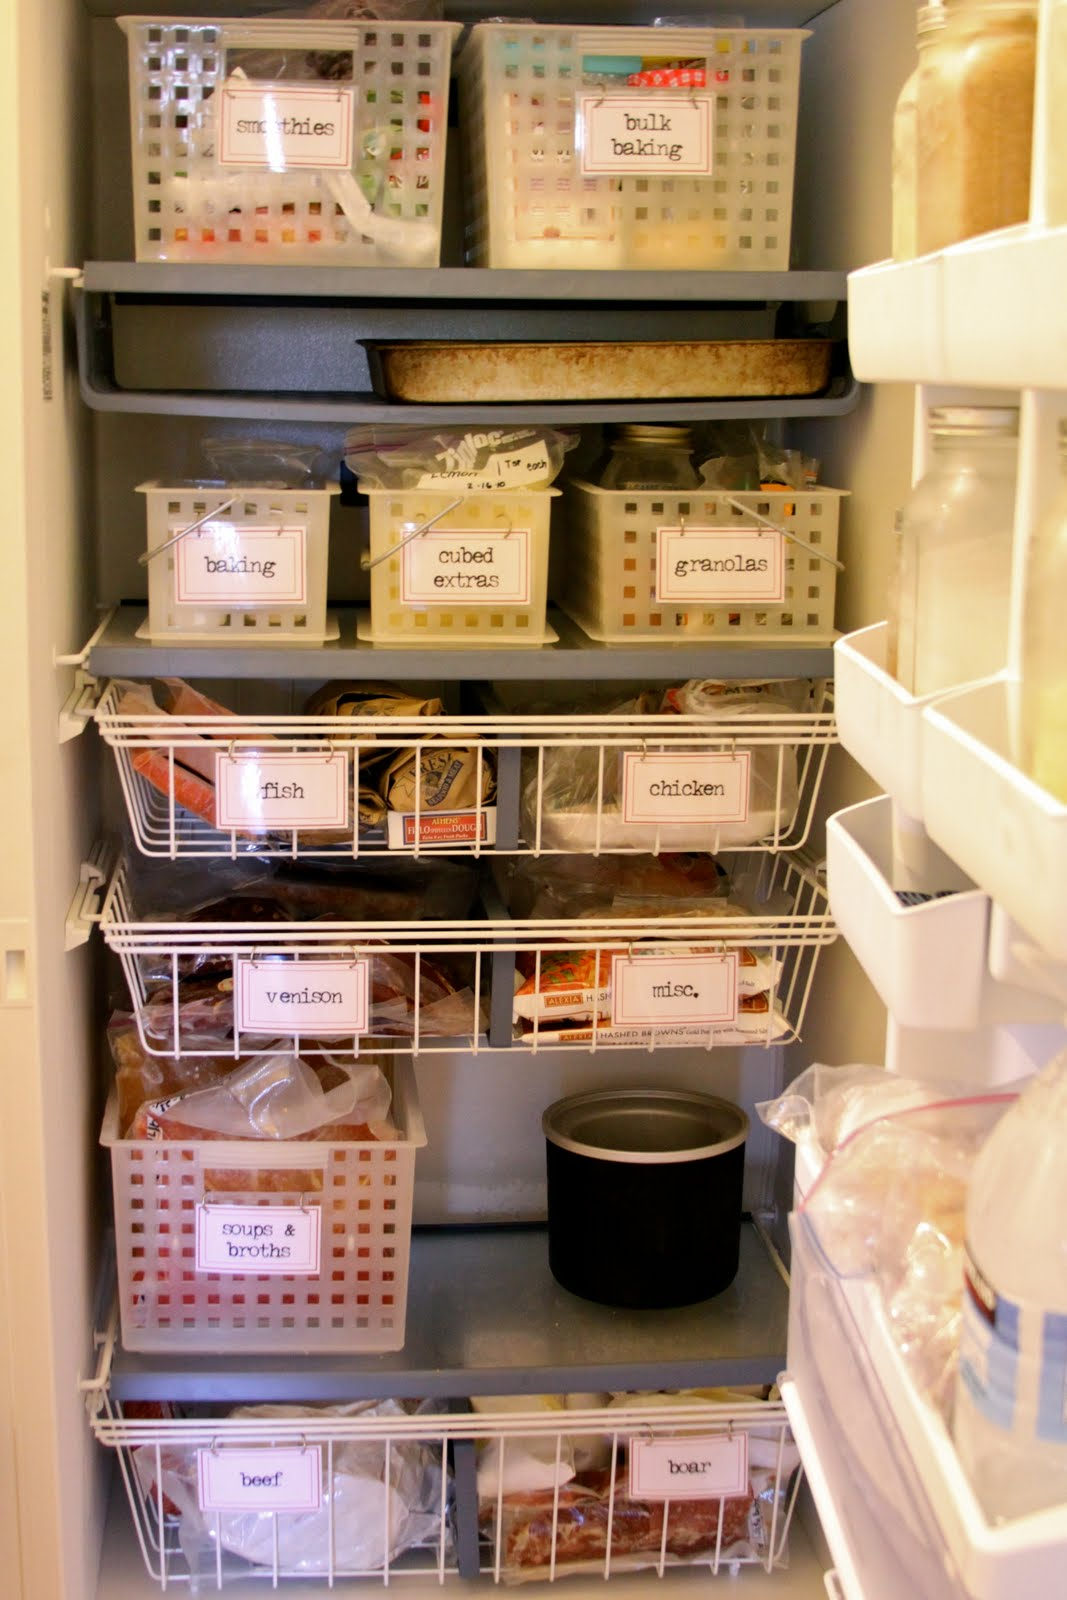 Fantastic Homestead Revival: Upright Freezer Organization WW39